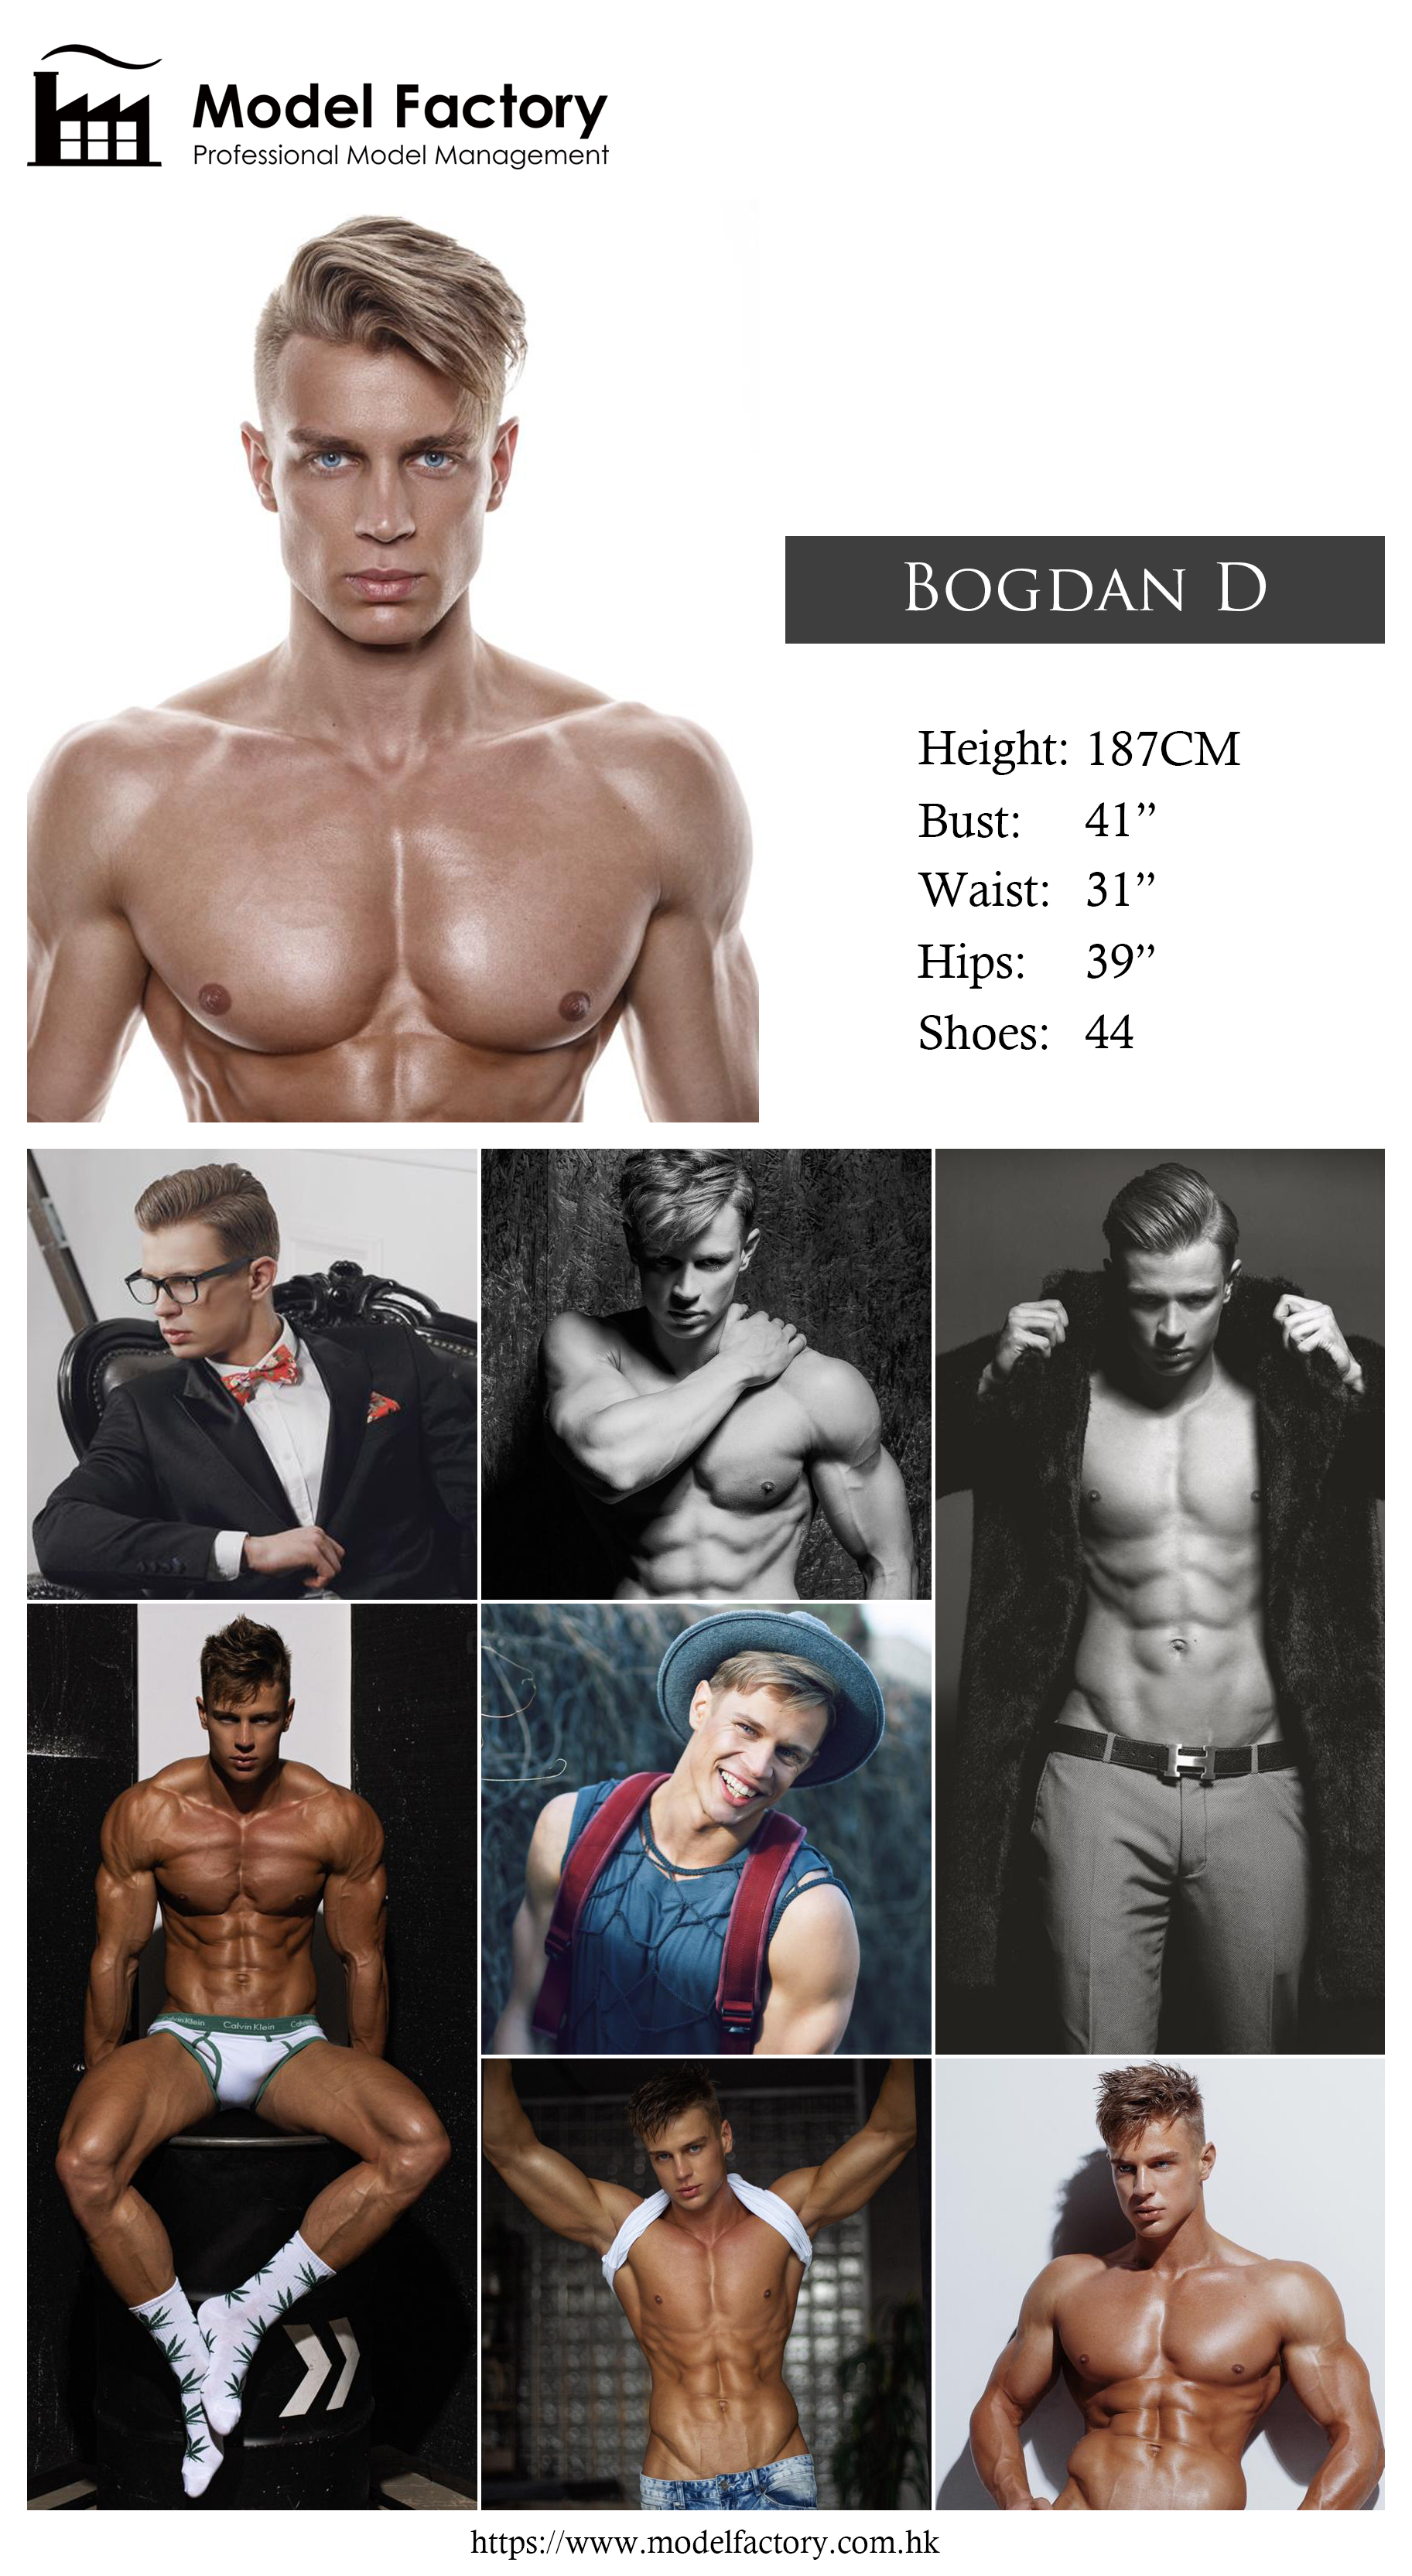 Model Factory Caucasian Male Model BogdanD